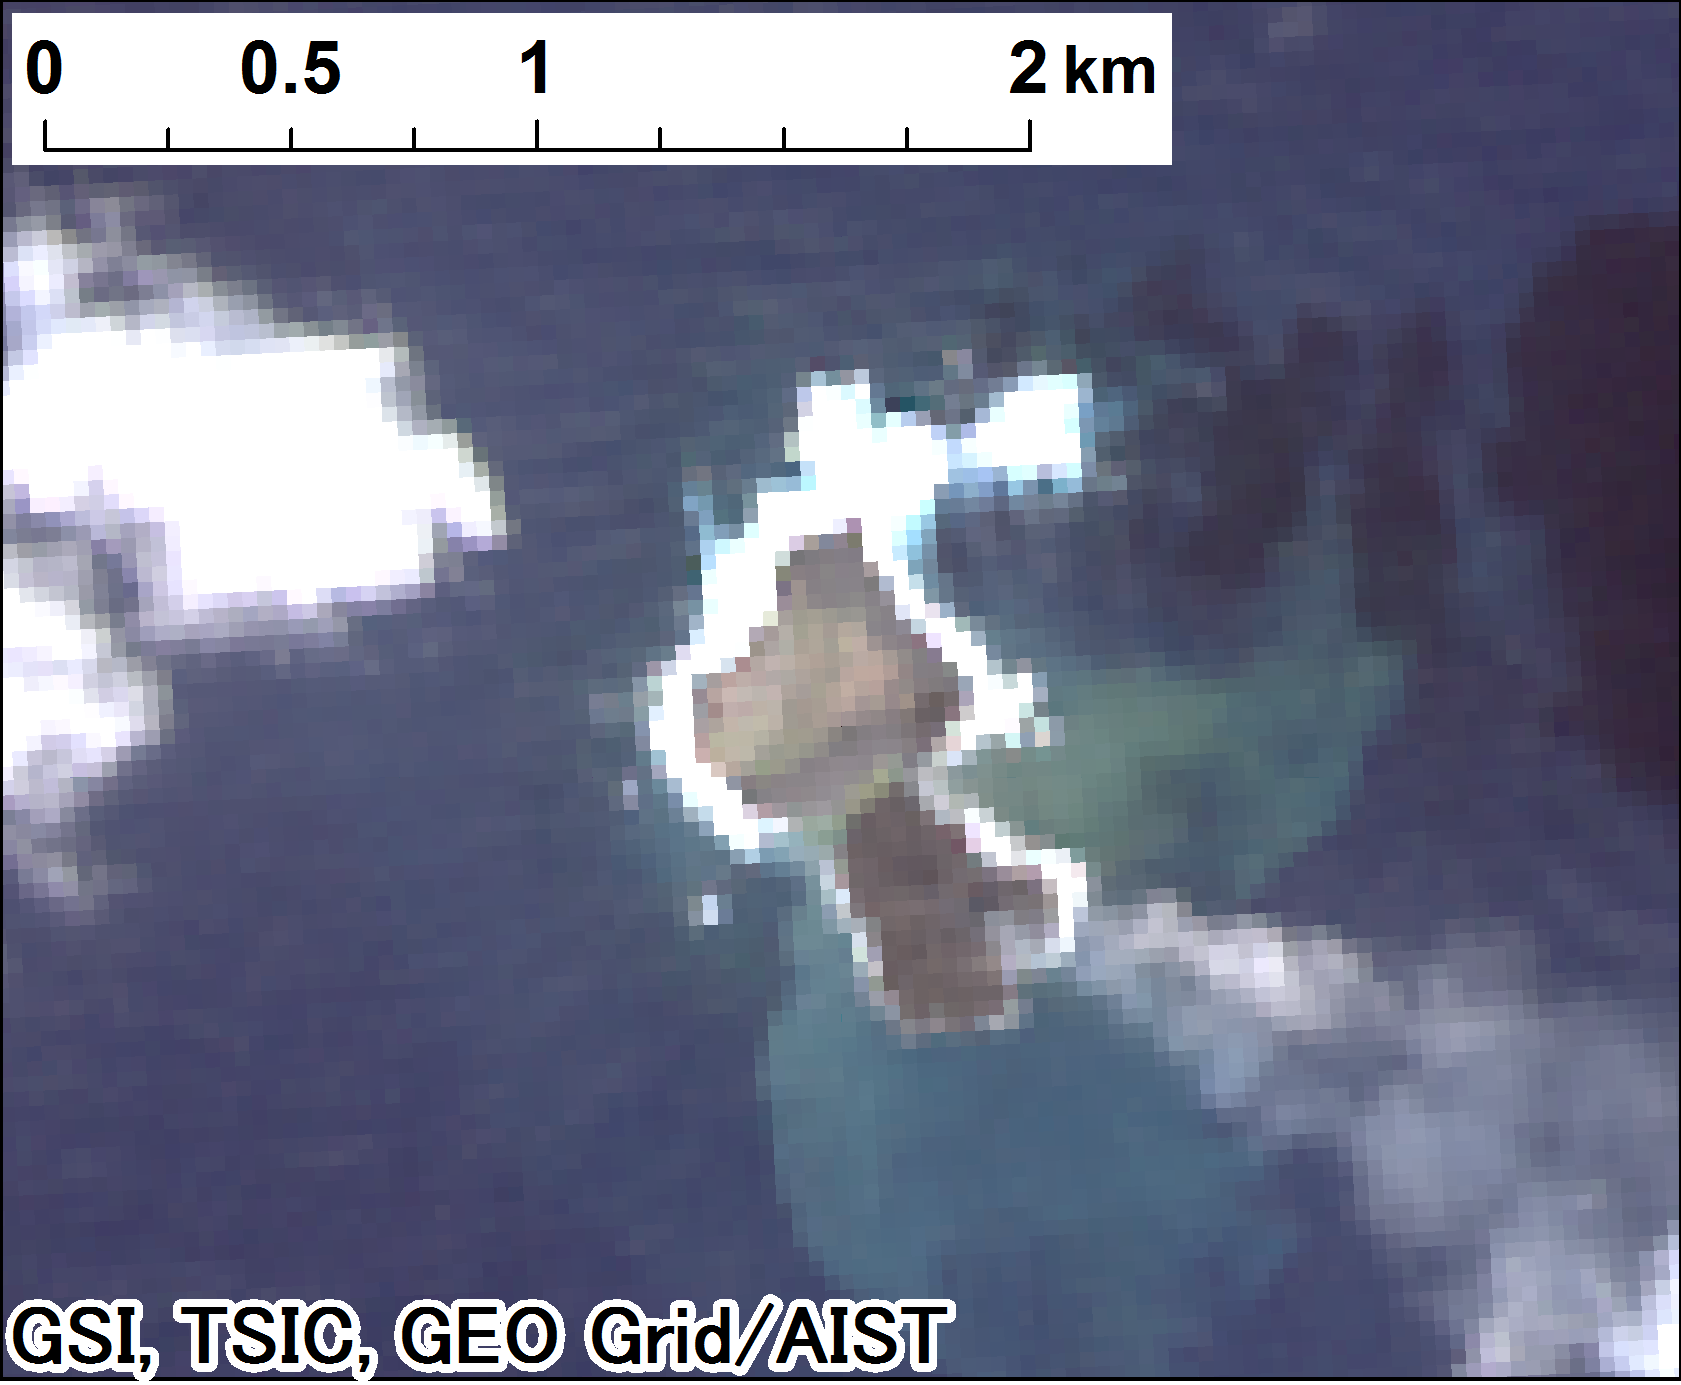 Landsat 8 true-color imagery after the eruption (2013-12-24)